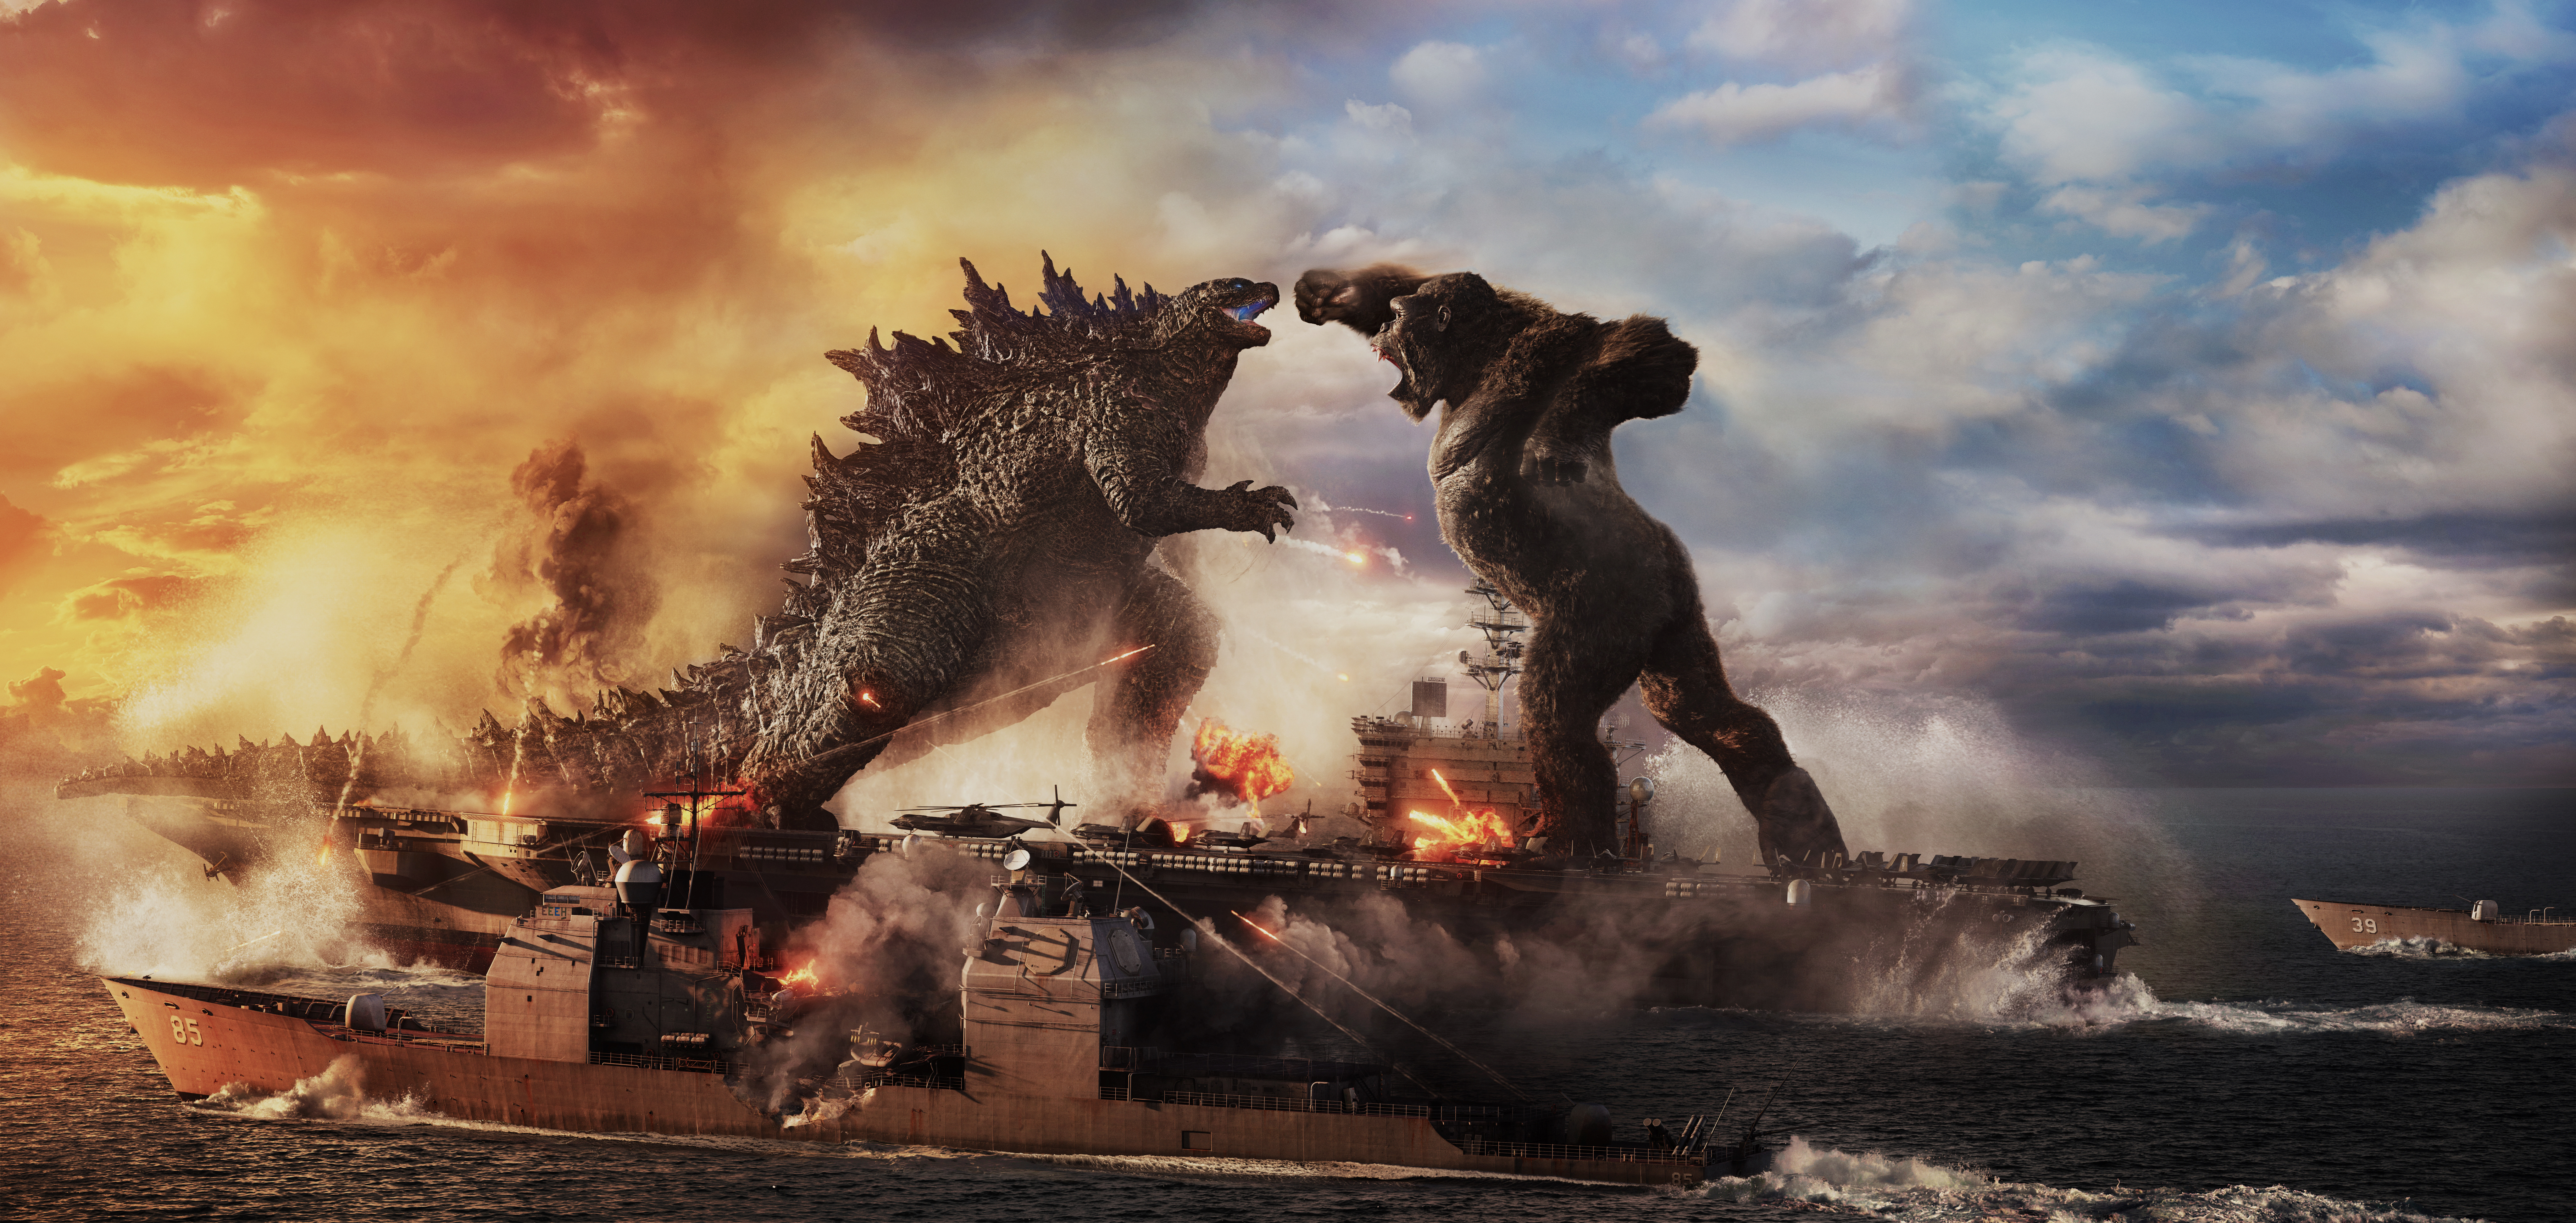 Twitter Reacts To The Epic Showdown Between Godzilla & King Kong